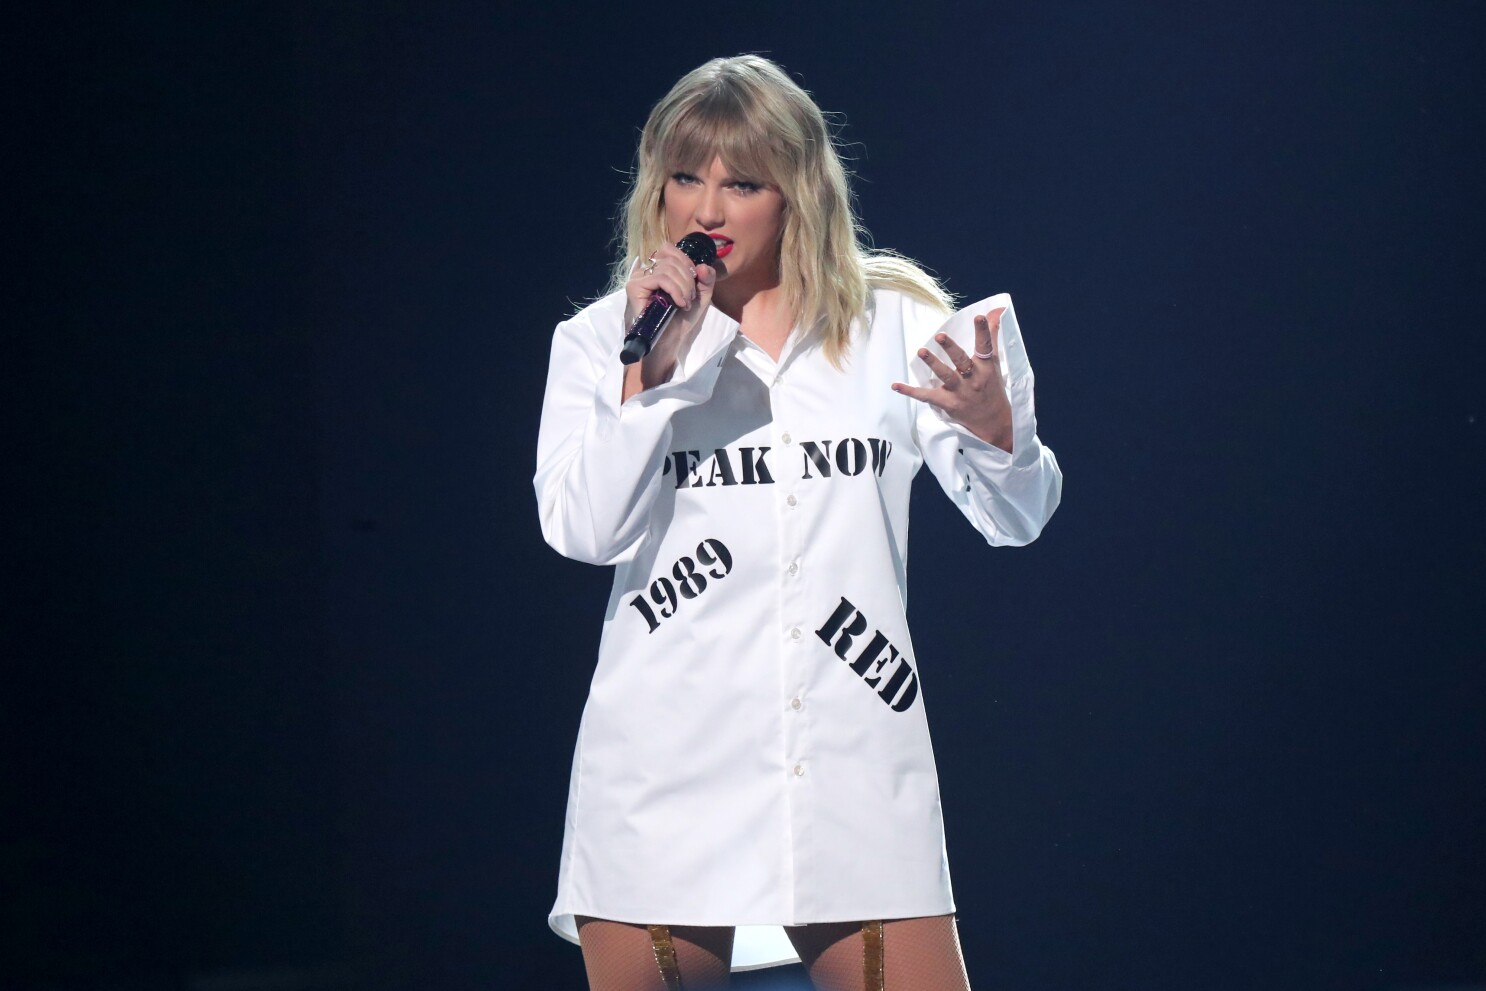 Taylor Swift Takes Another Swipe At Big Machine With New Shirt Los Angeles Times